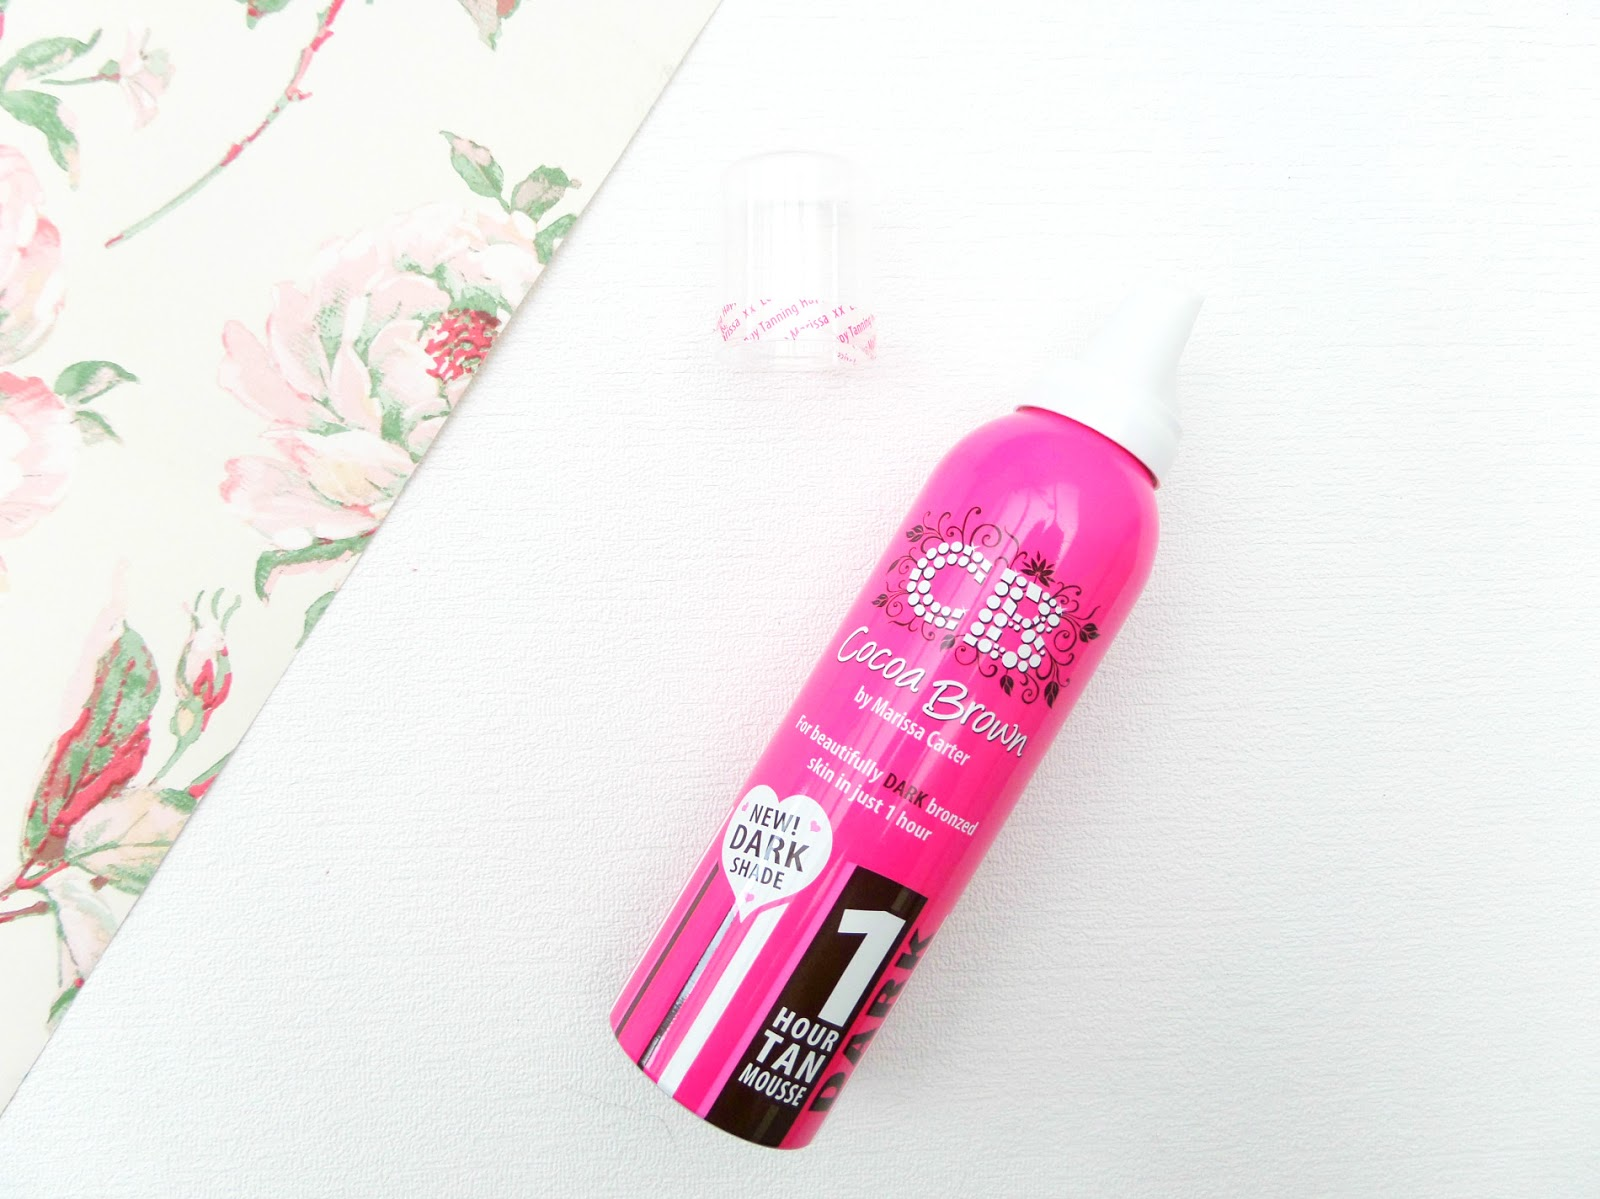 The Cocoa Brown One Hour Dark Tan The Dark Shade Review